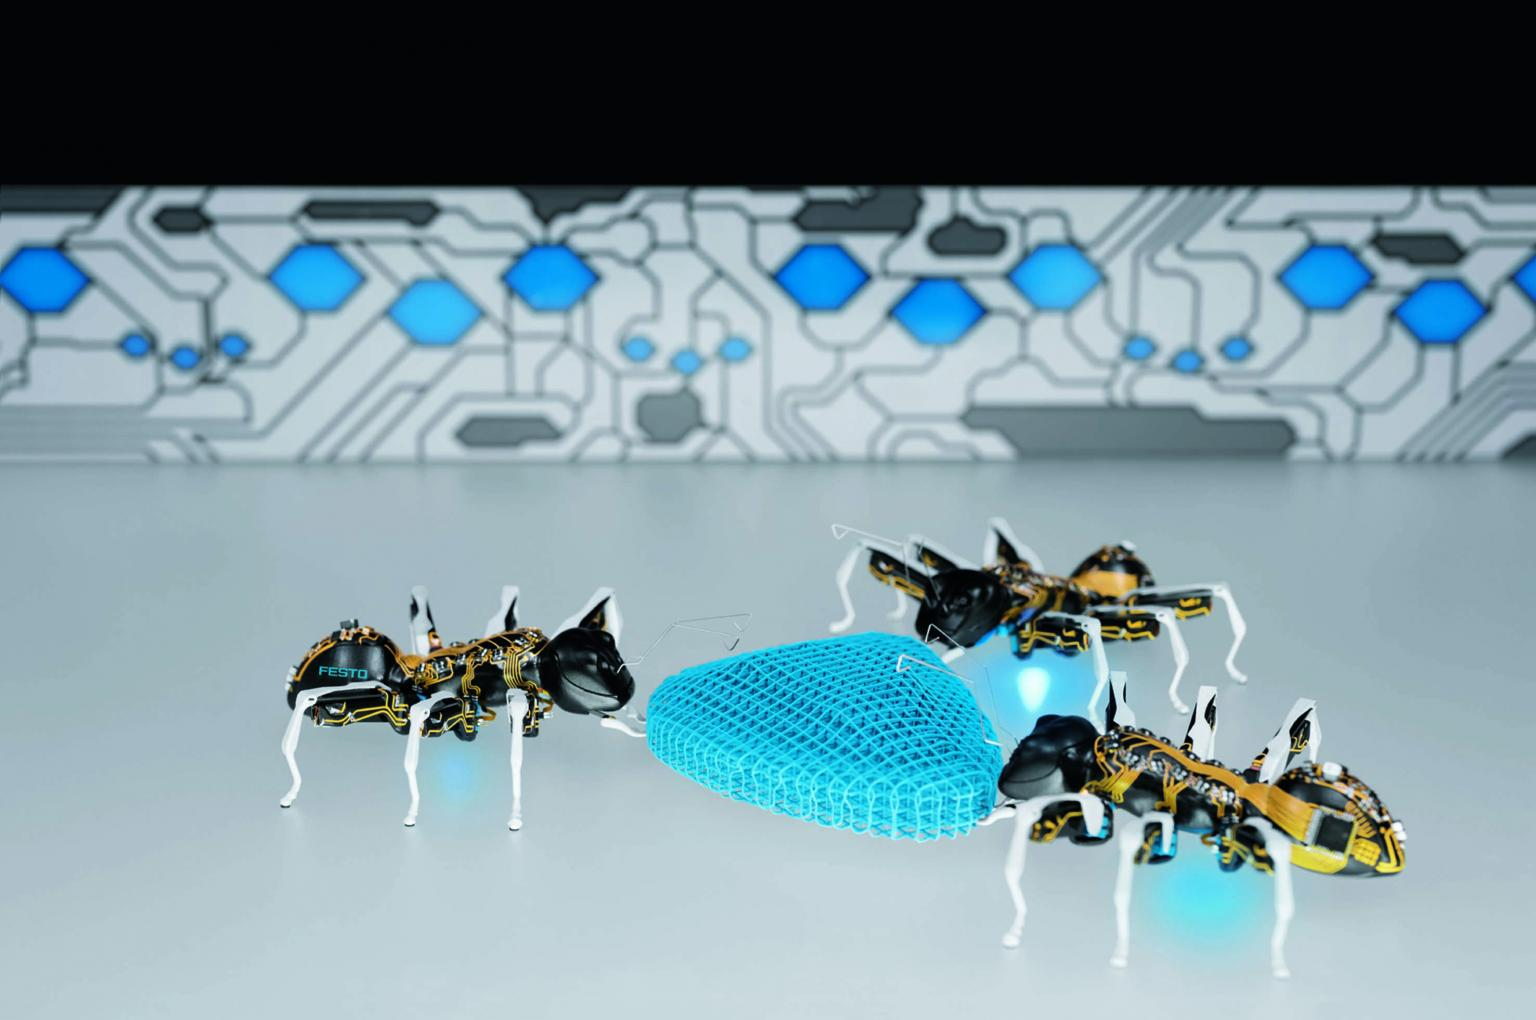 The BionicAnts demonstrate how self-organising individual components can communicate with each other and solve complex tasks as a networked overall system